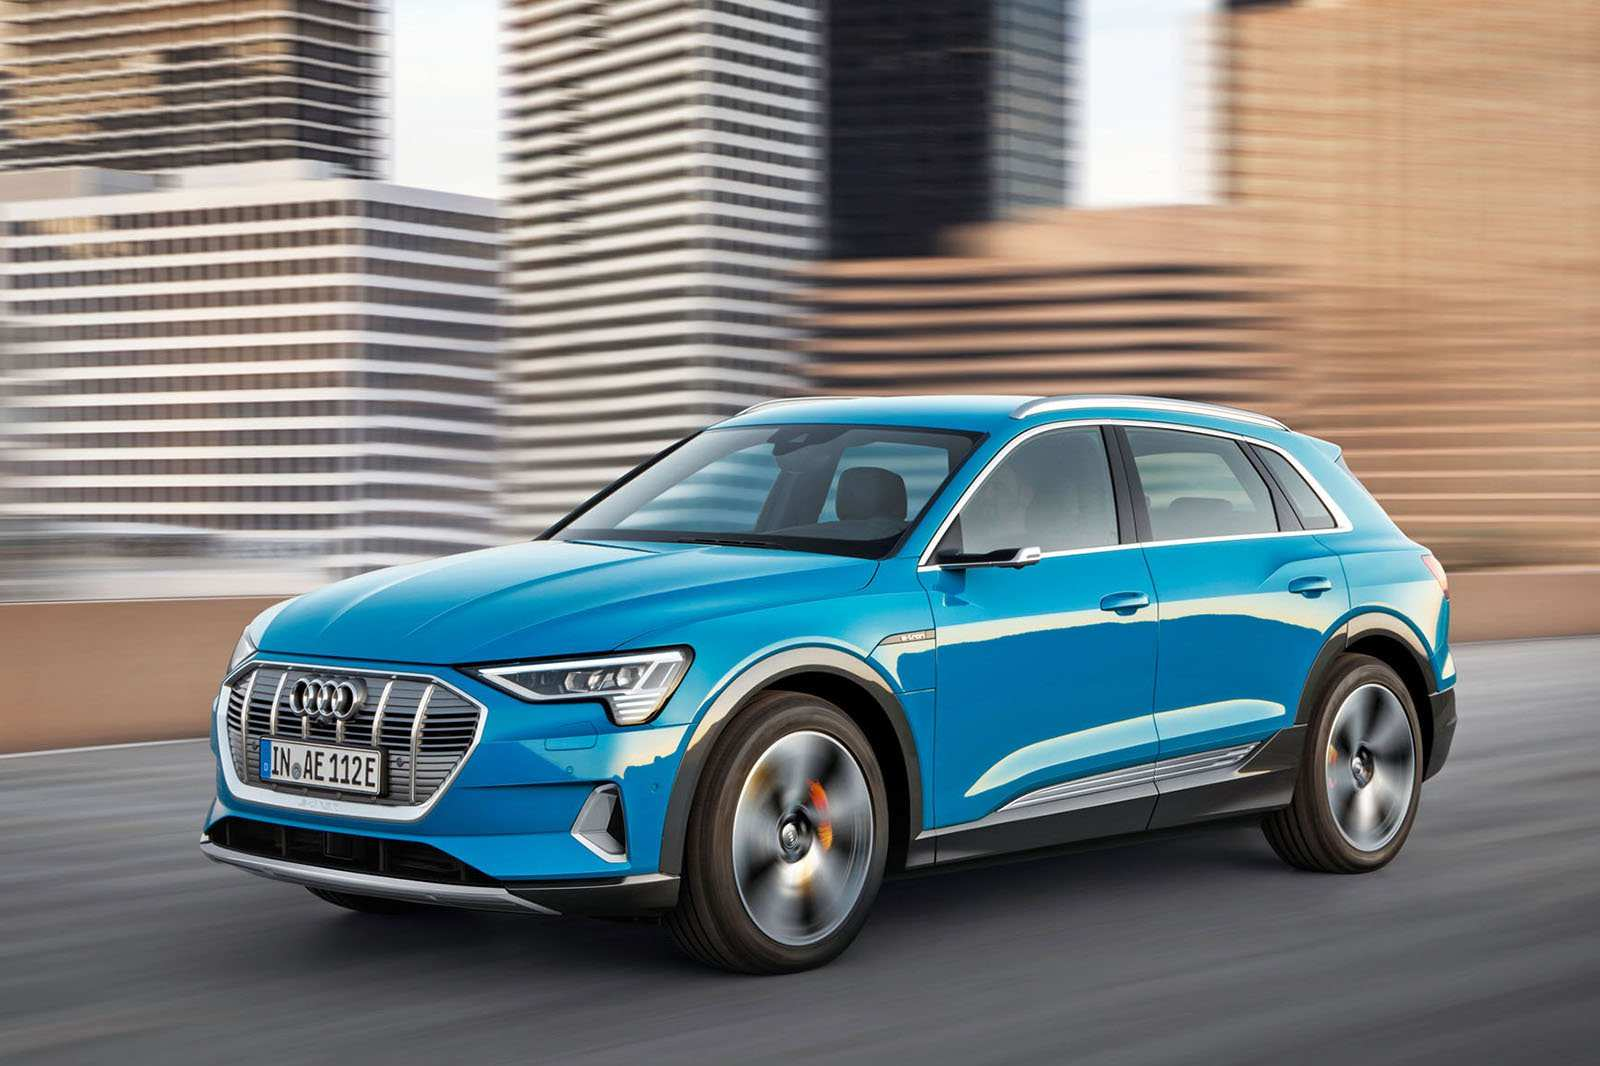 62 Gallery of Best When Does Audi Release 2019 Models Review Specs And Release Date Reviews by Best When Does Audi Release 2019 Models Review Specs And Release Date